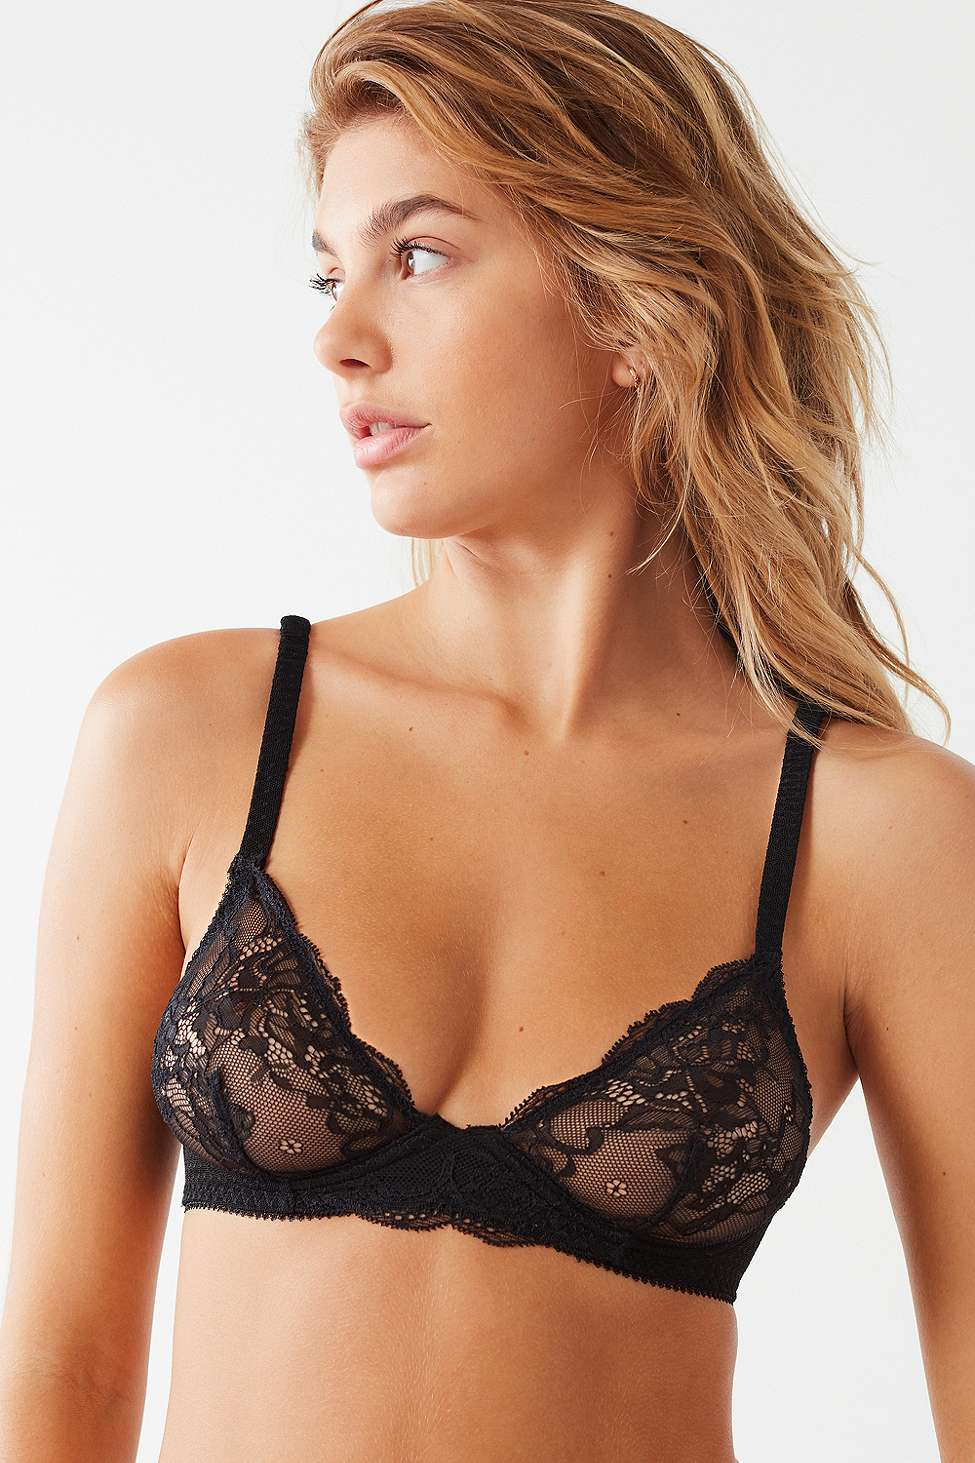 Short and Sweet Lace Underwire Bra, Black